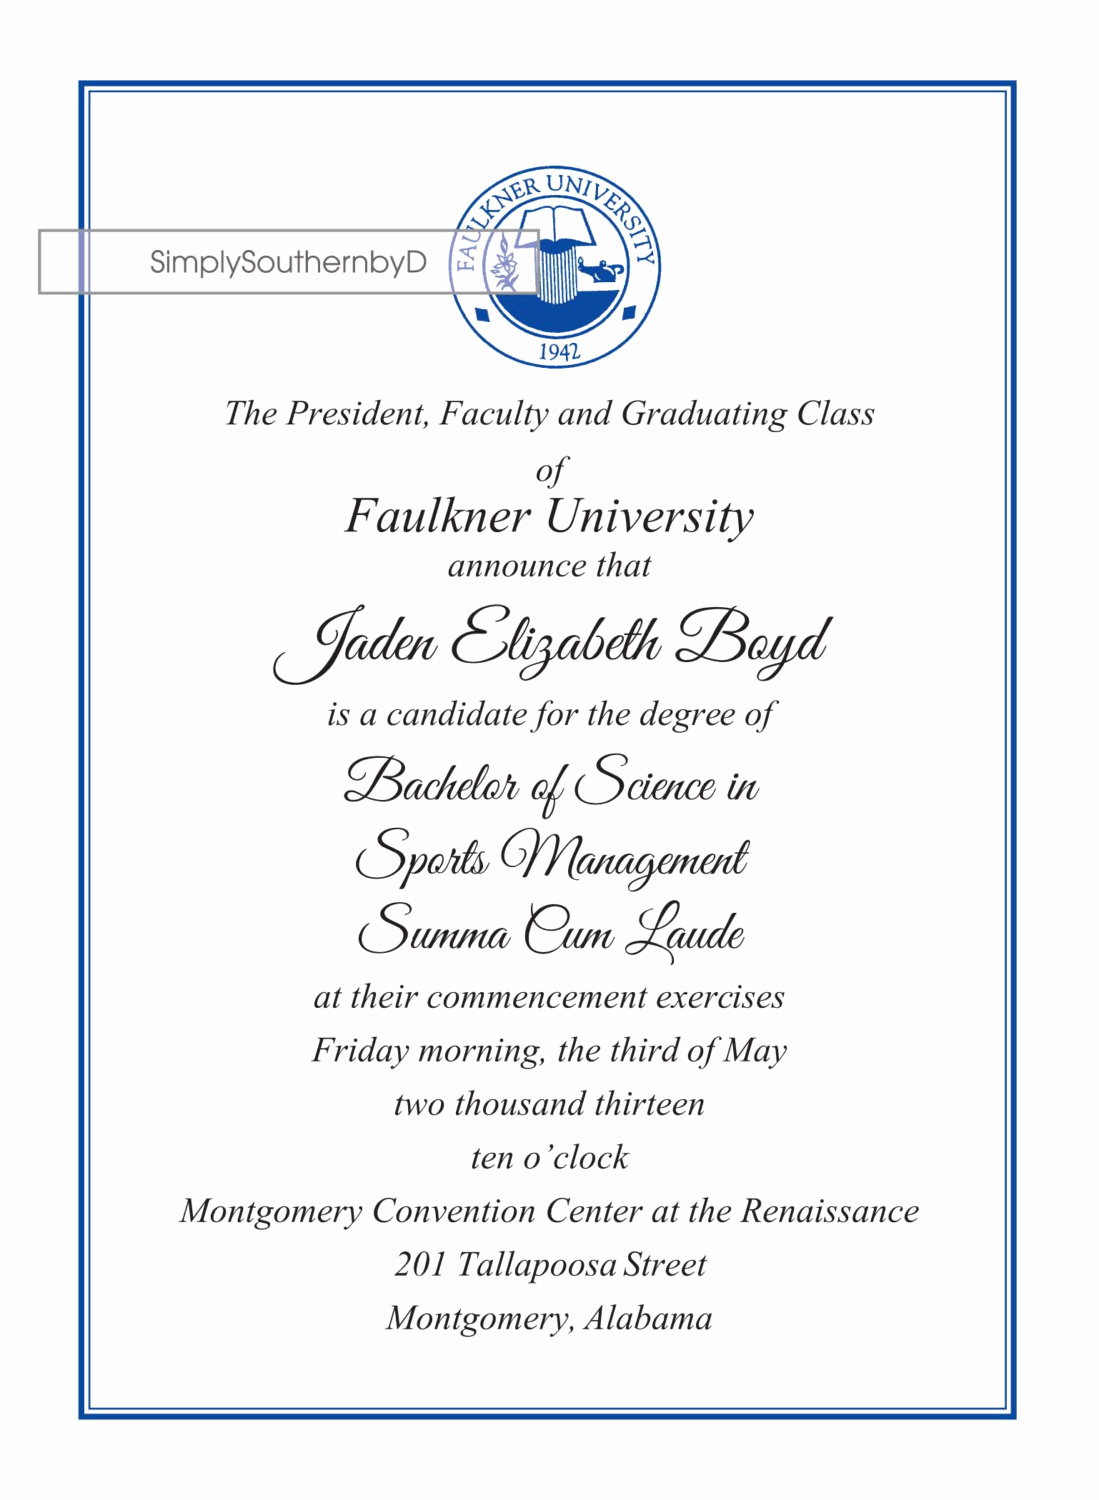 Graduation Invitation Wording Samples Beautiful College Graduation Announcements by Simplysouthernbyd On Etsy